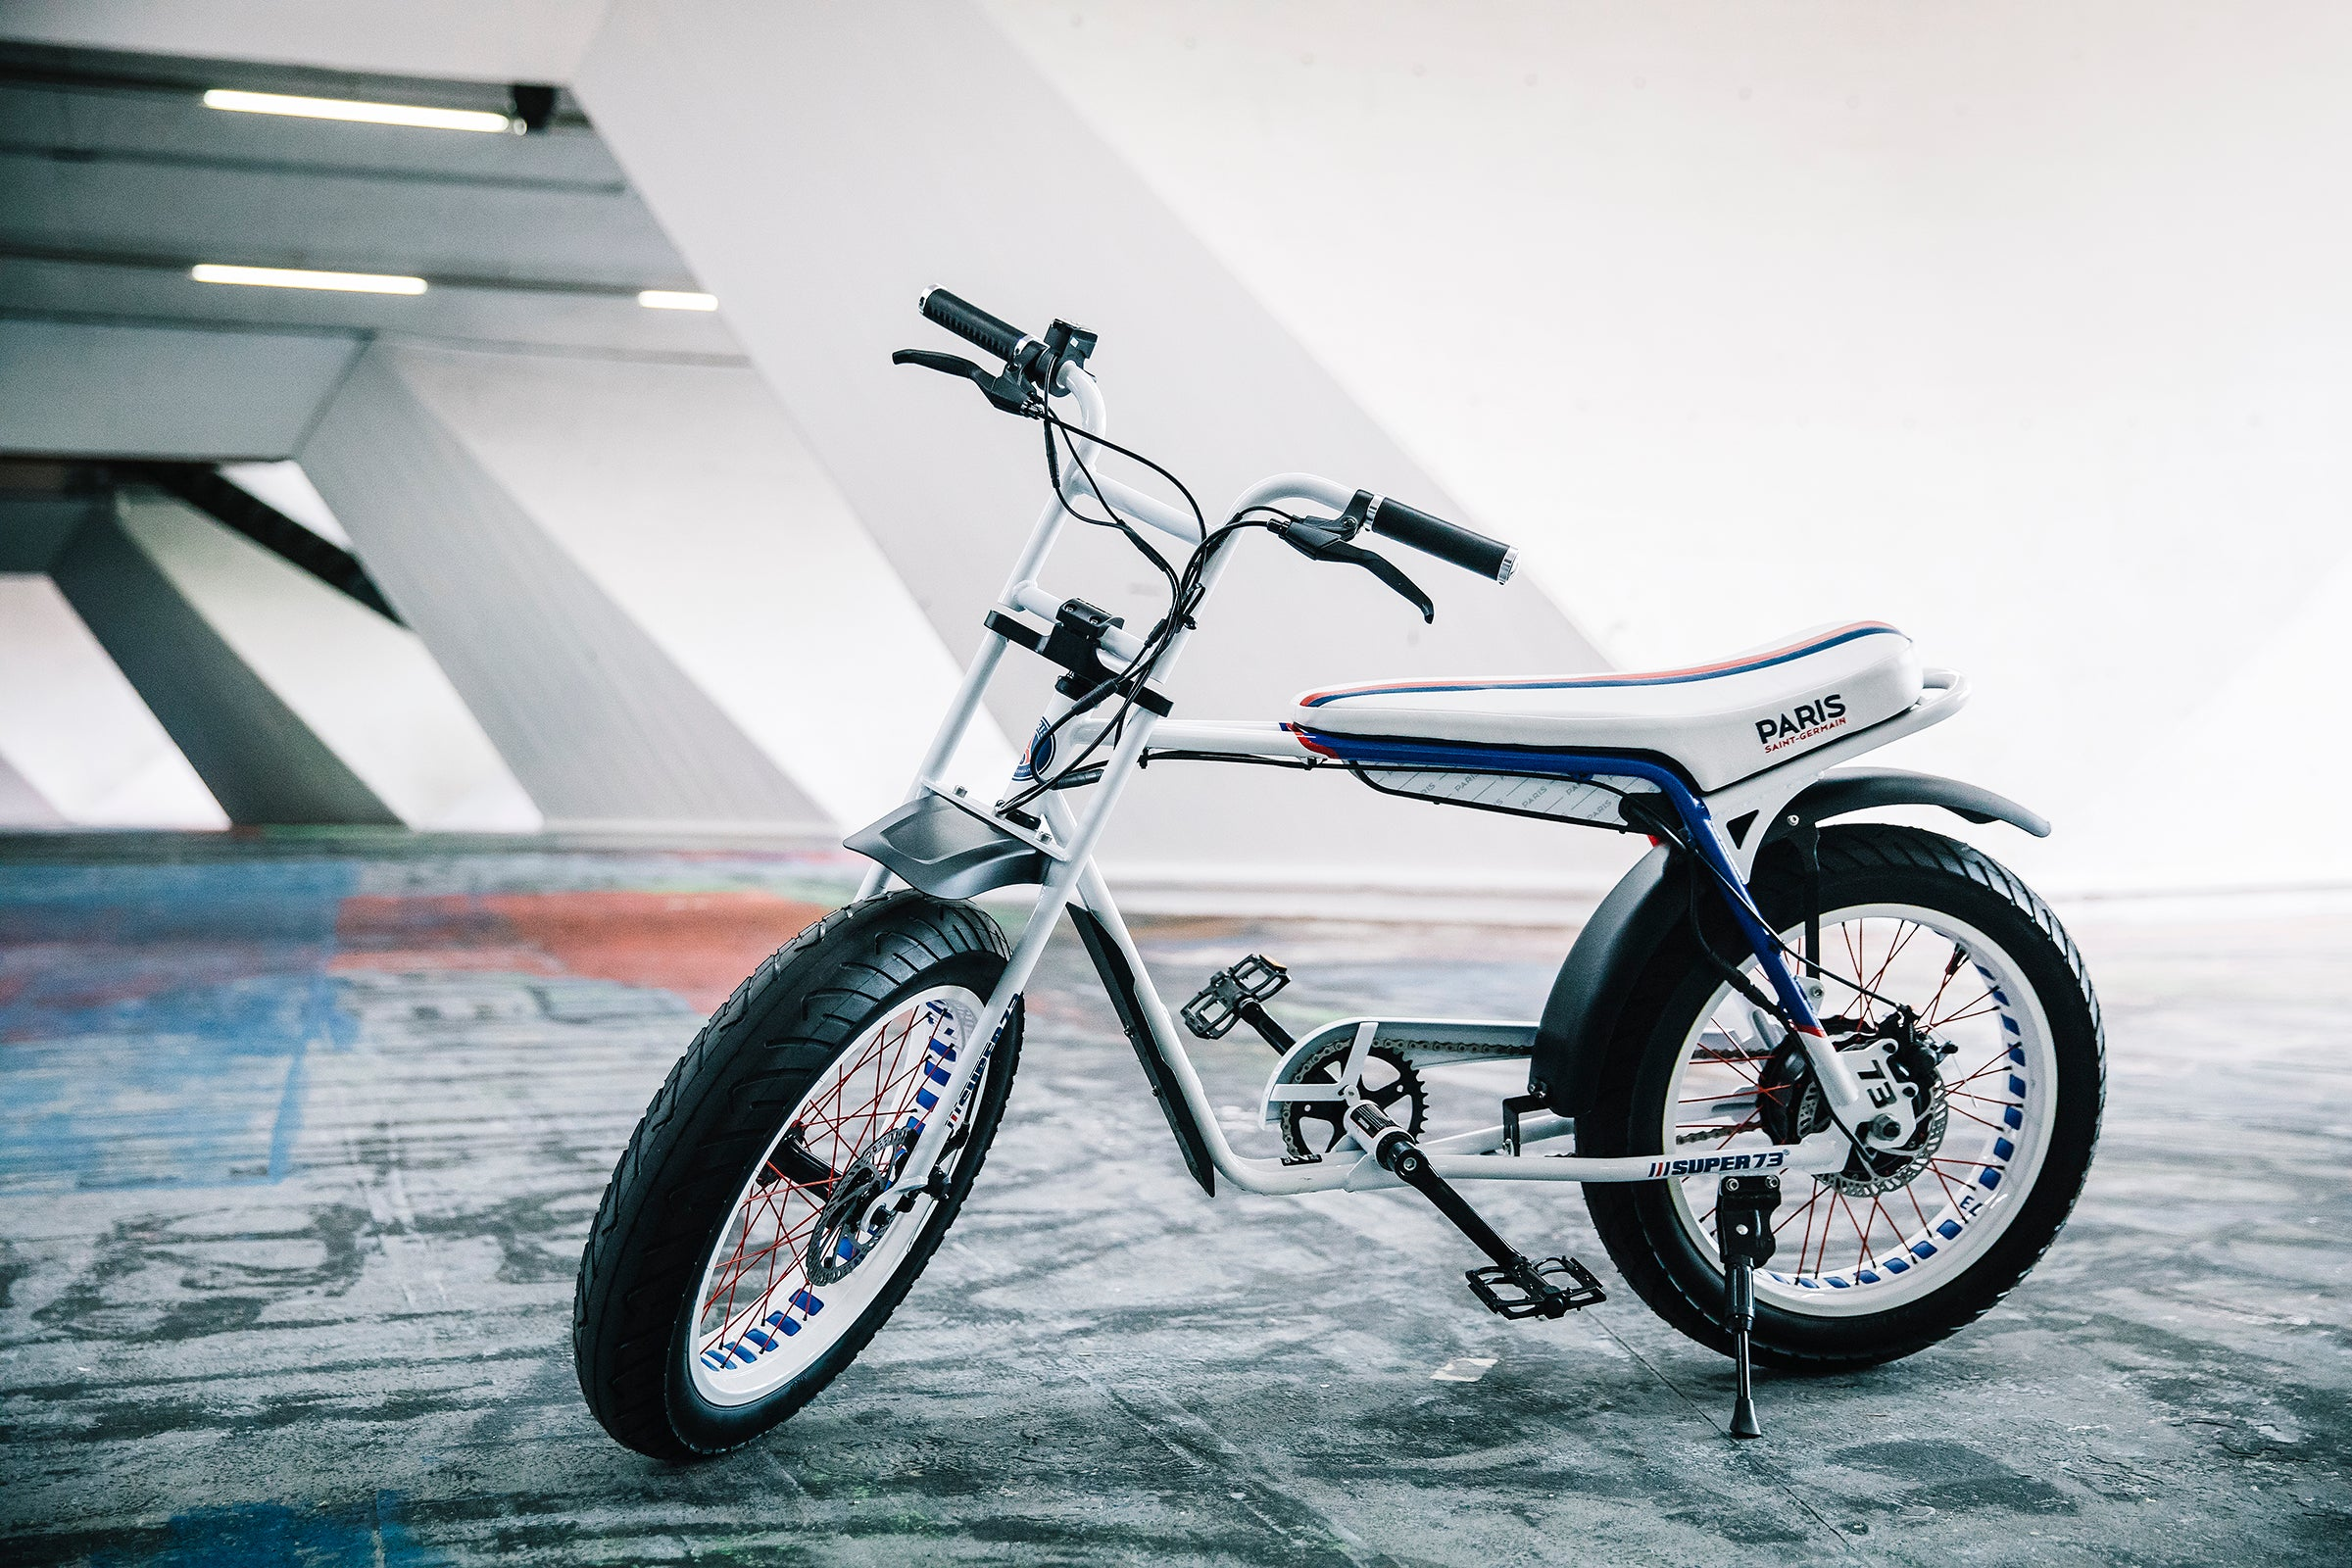 PSG x Super73-Z electric bike collab ebike